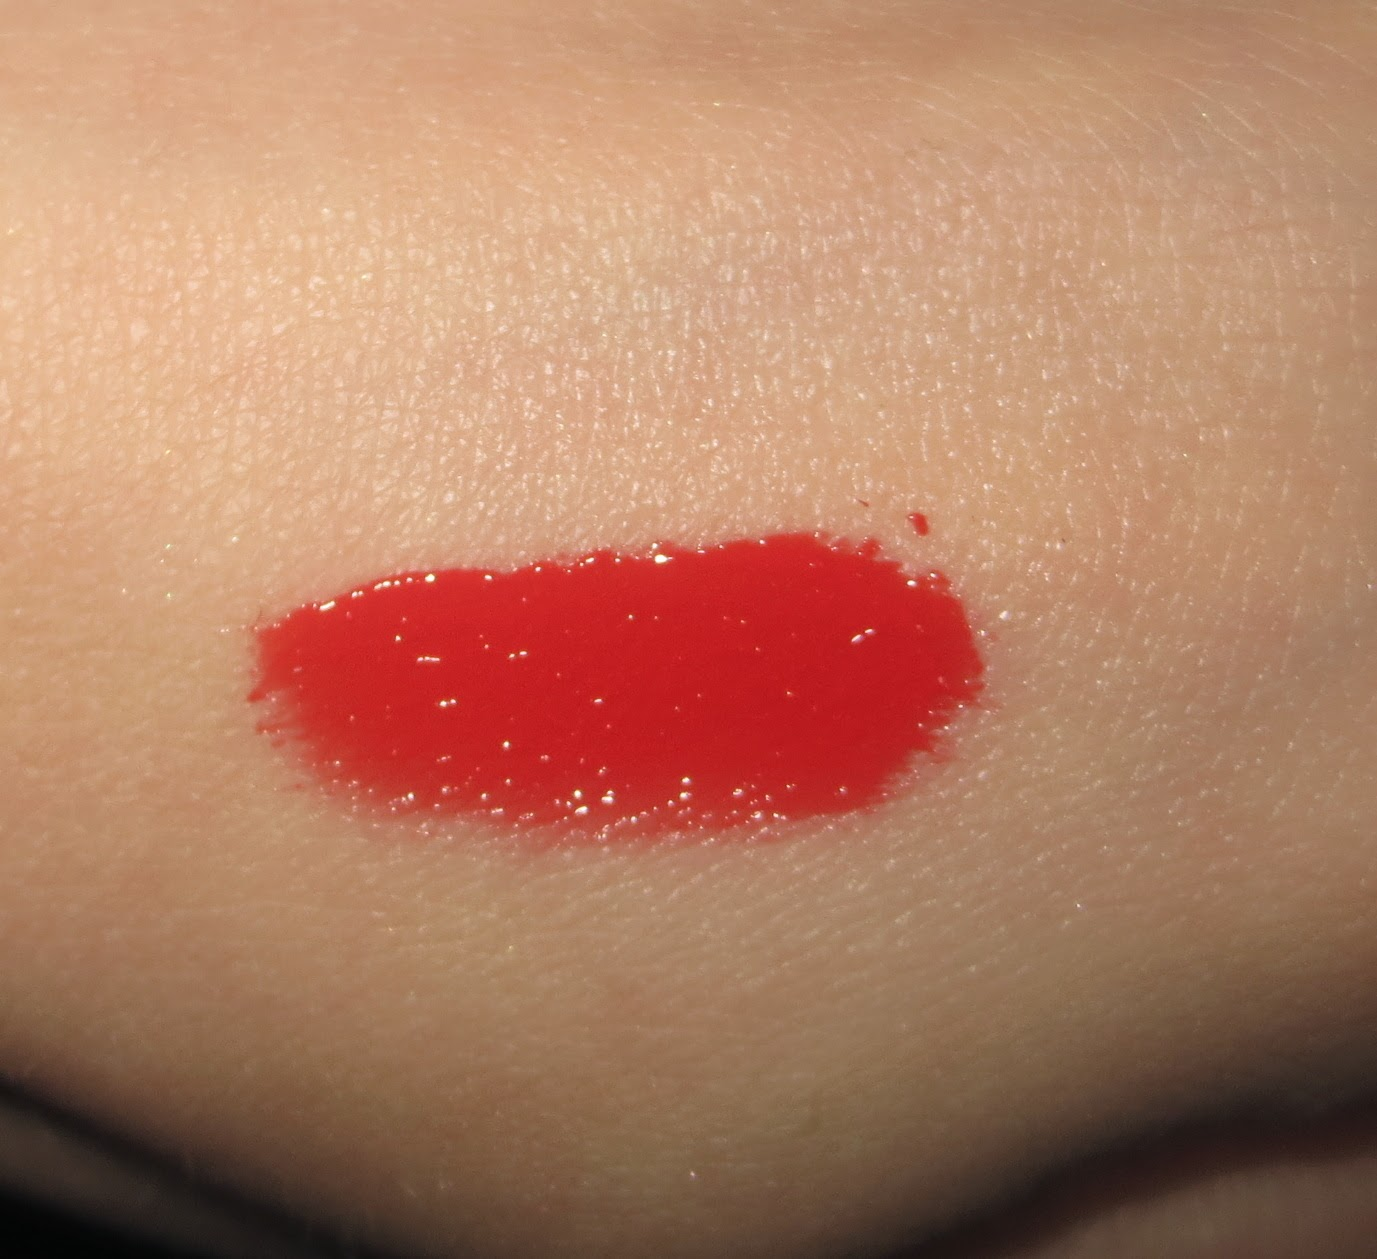 Stila Stay All Day Vinyl Lip Gloss in Poppy Vinyl swatch